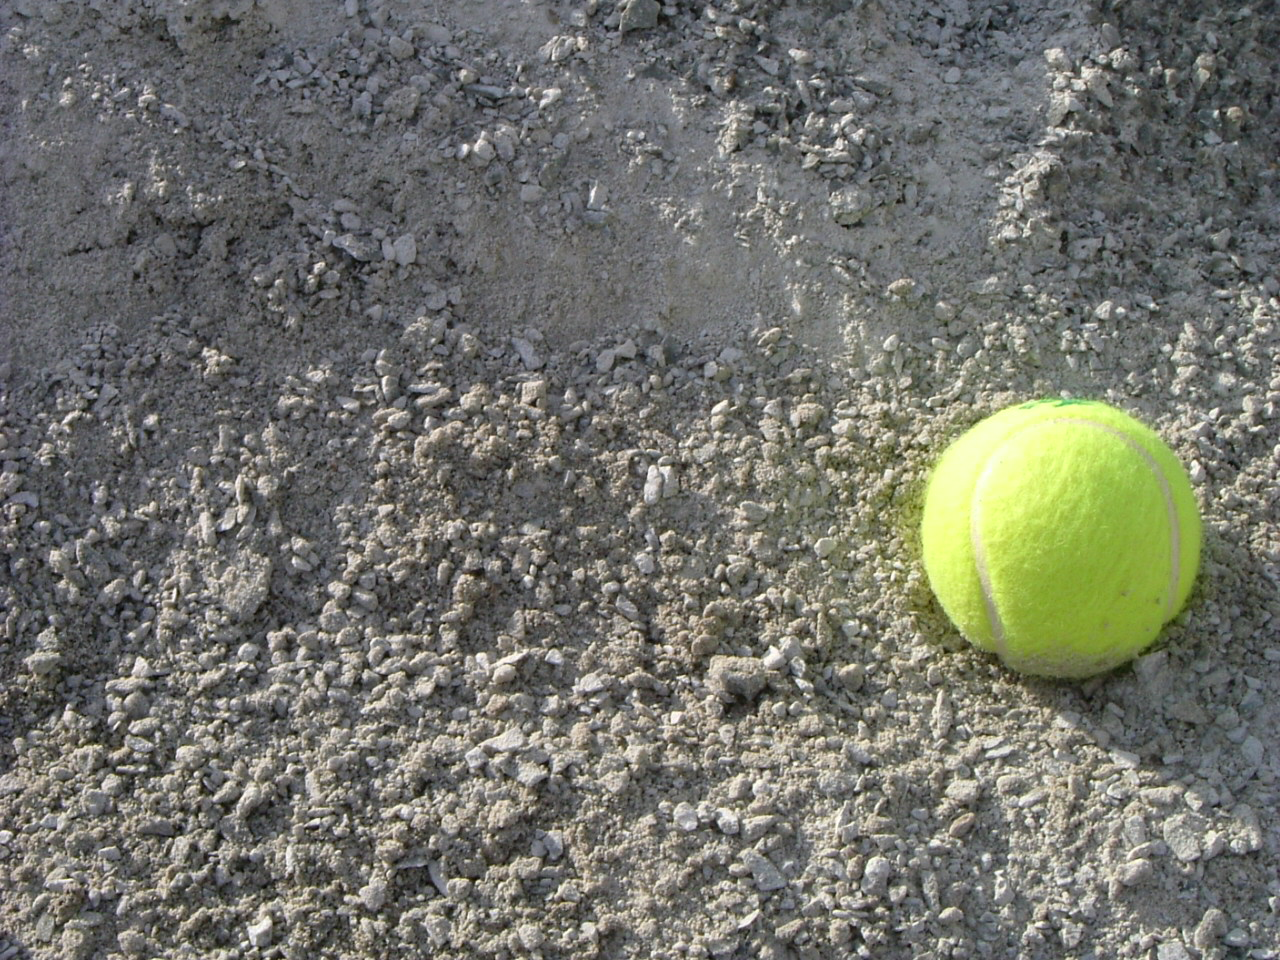 Use this tennis ball in the picture to gain a perspective on the size.